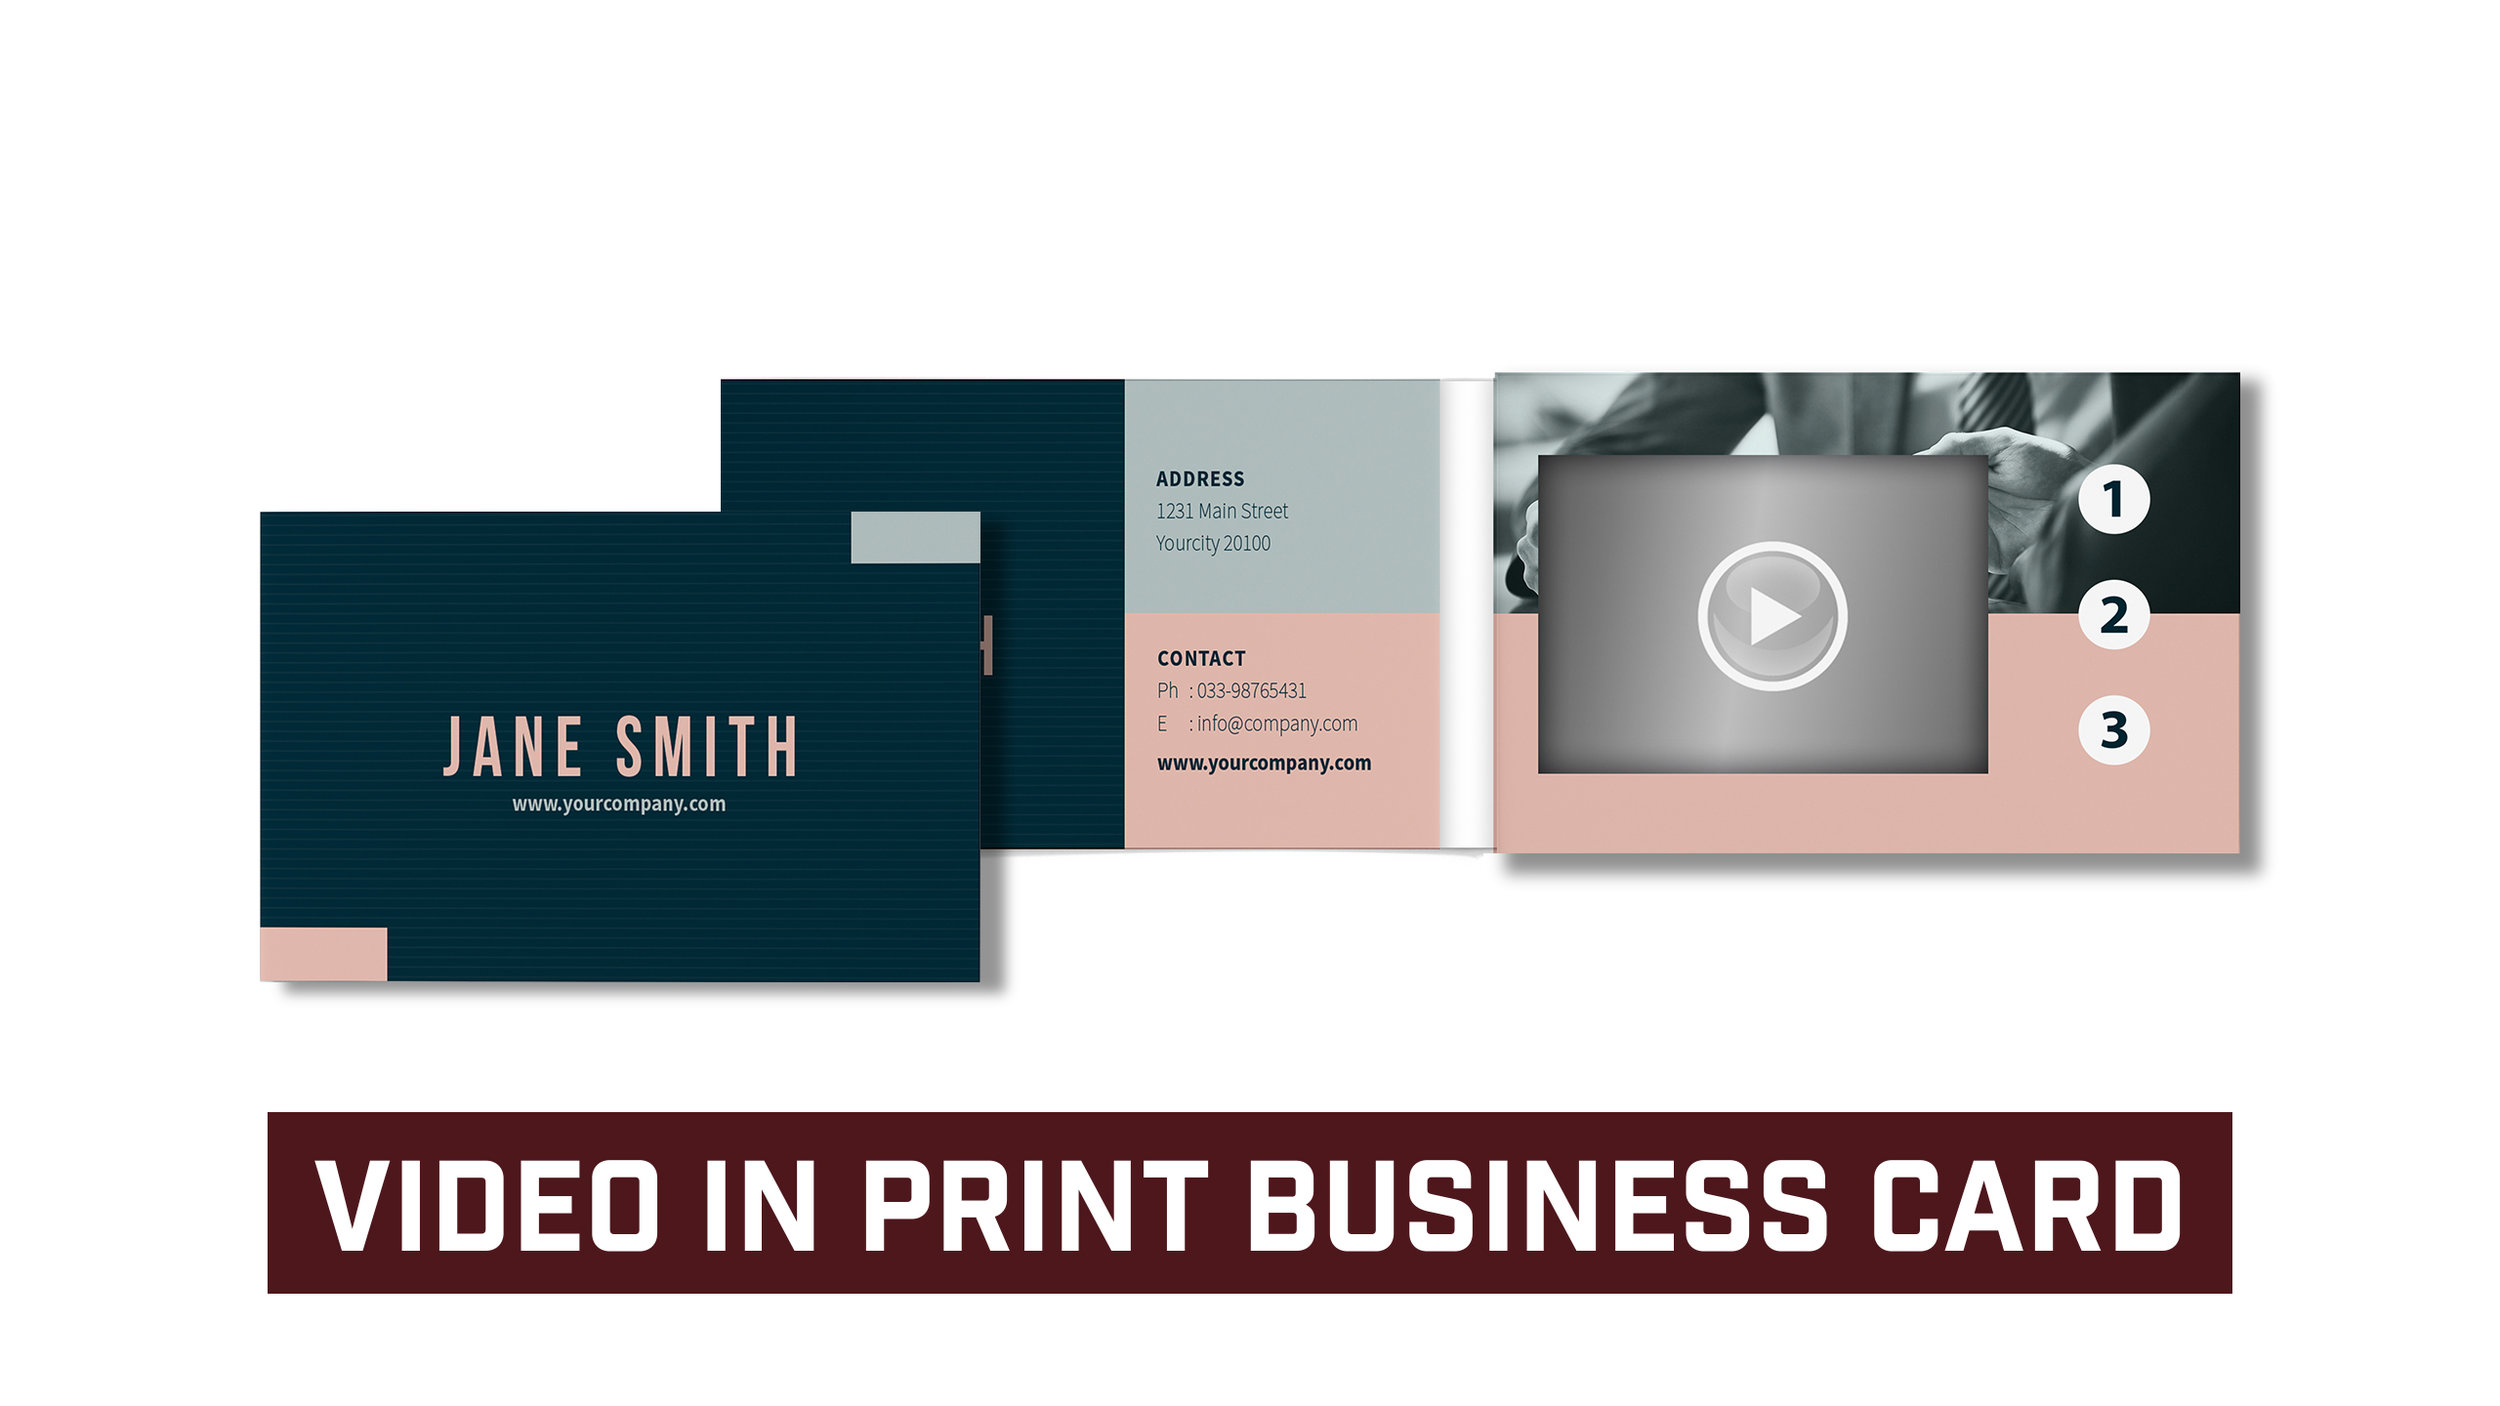 Video In Print Business Card *Plays Four Videos